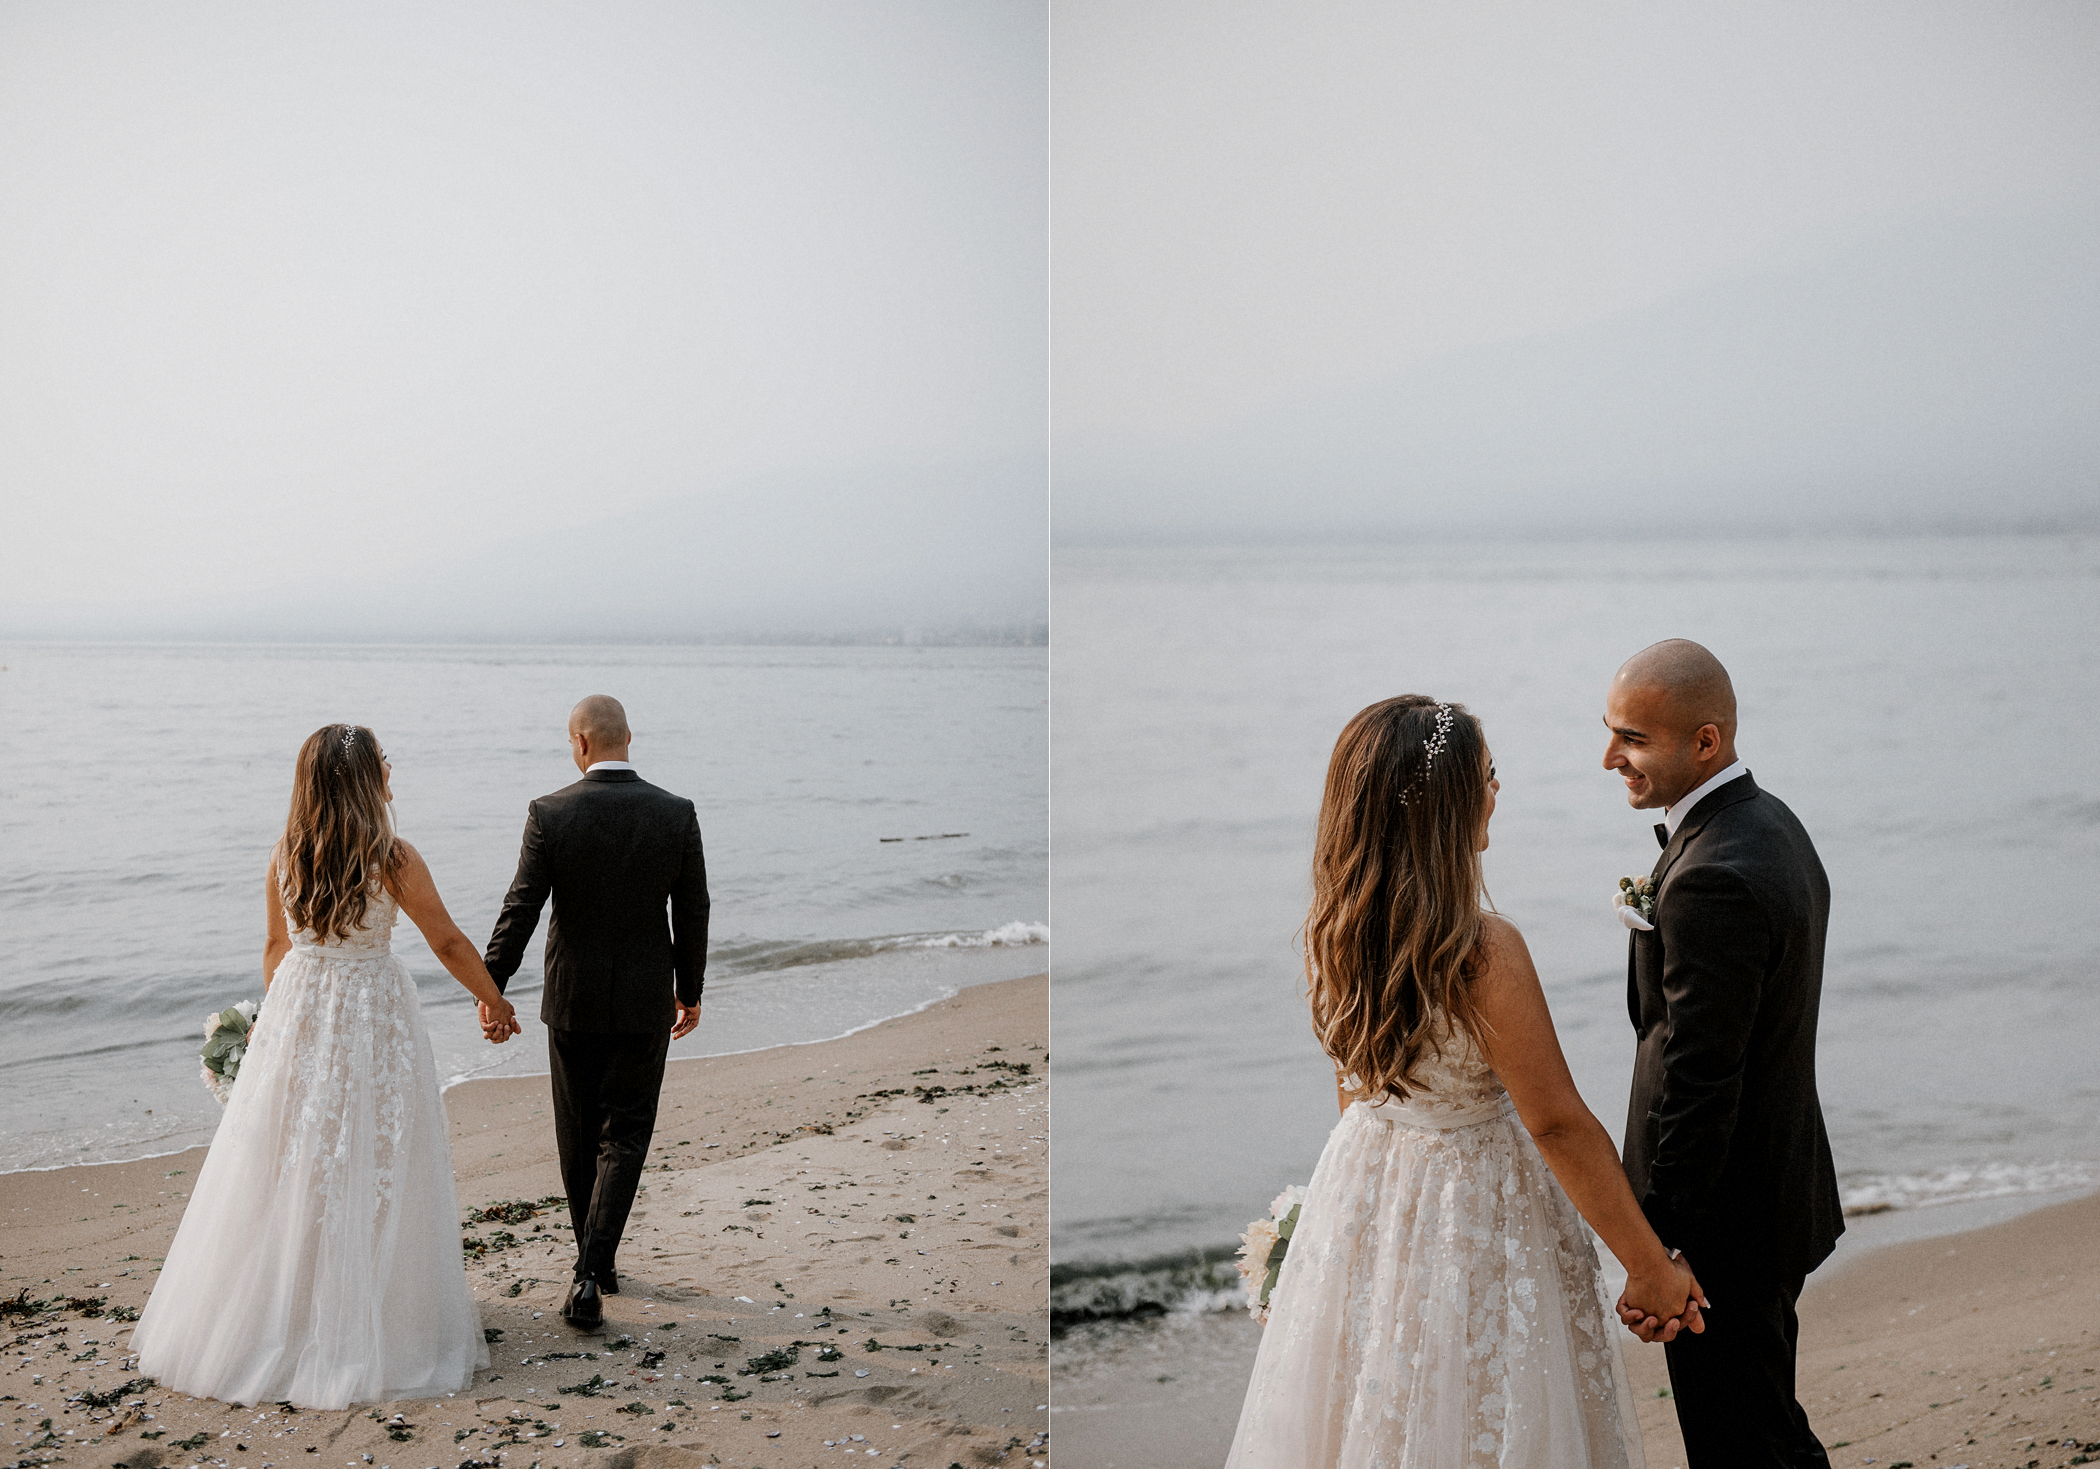 035-kaoverii-silva-LM-wedding-vancouver-photography-elopement-blog.png